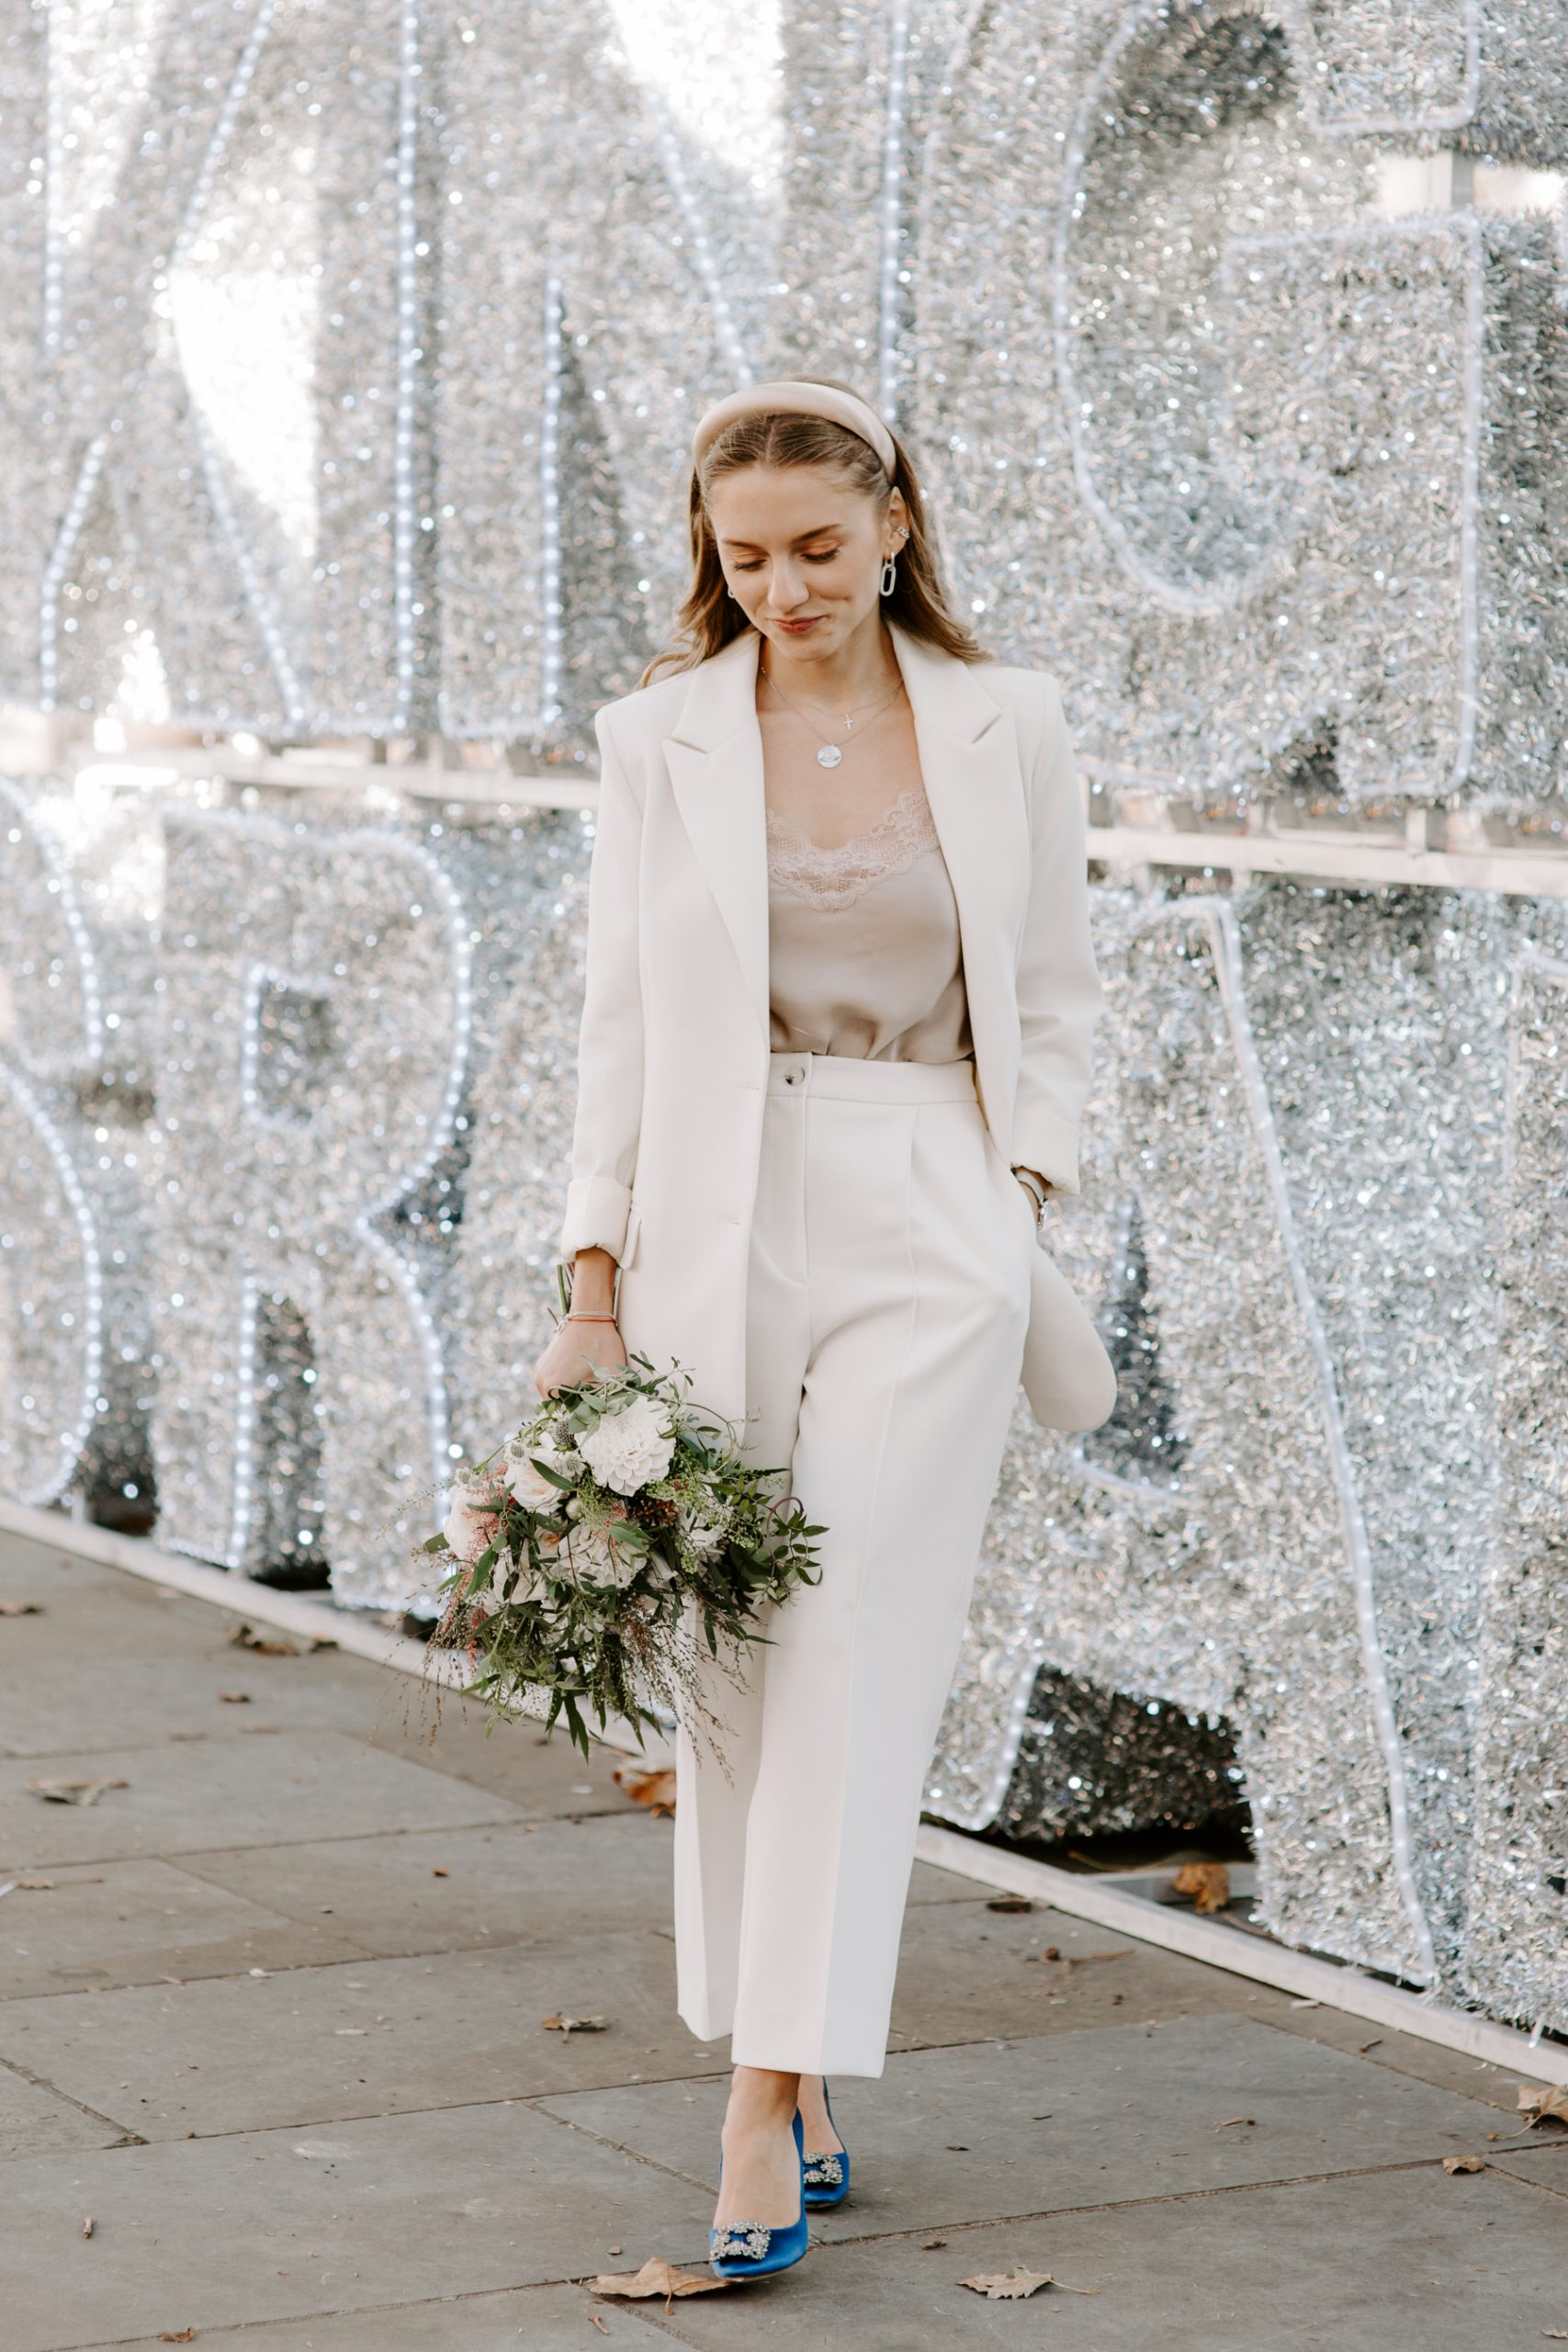 Modern Bride in suit at her London wedding